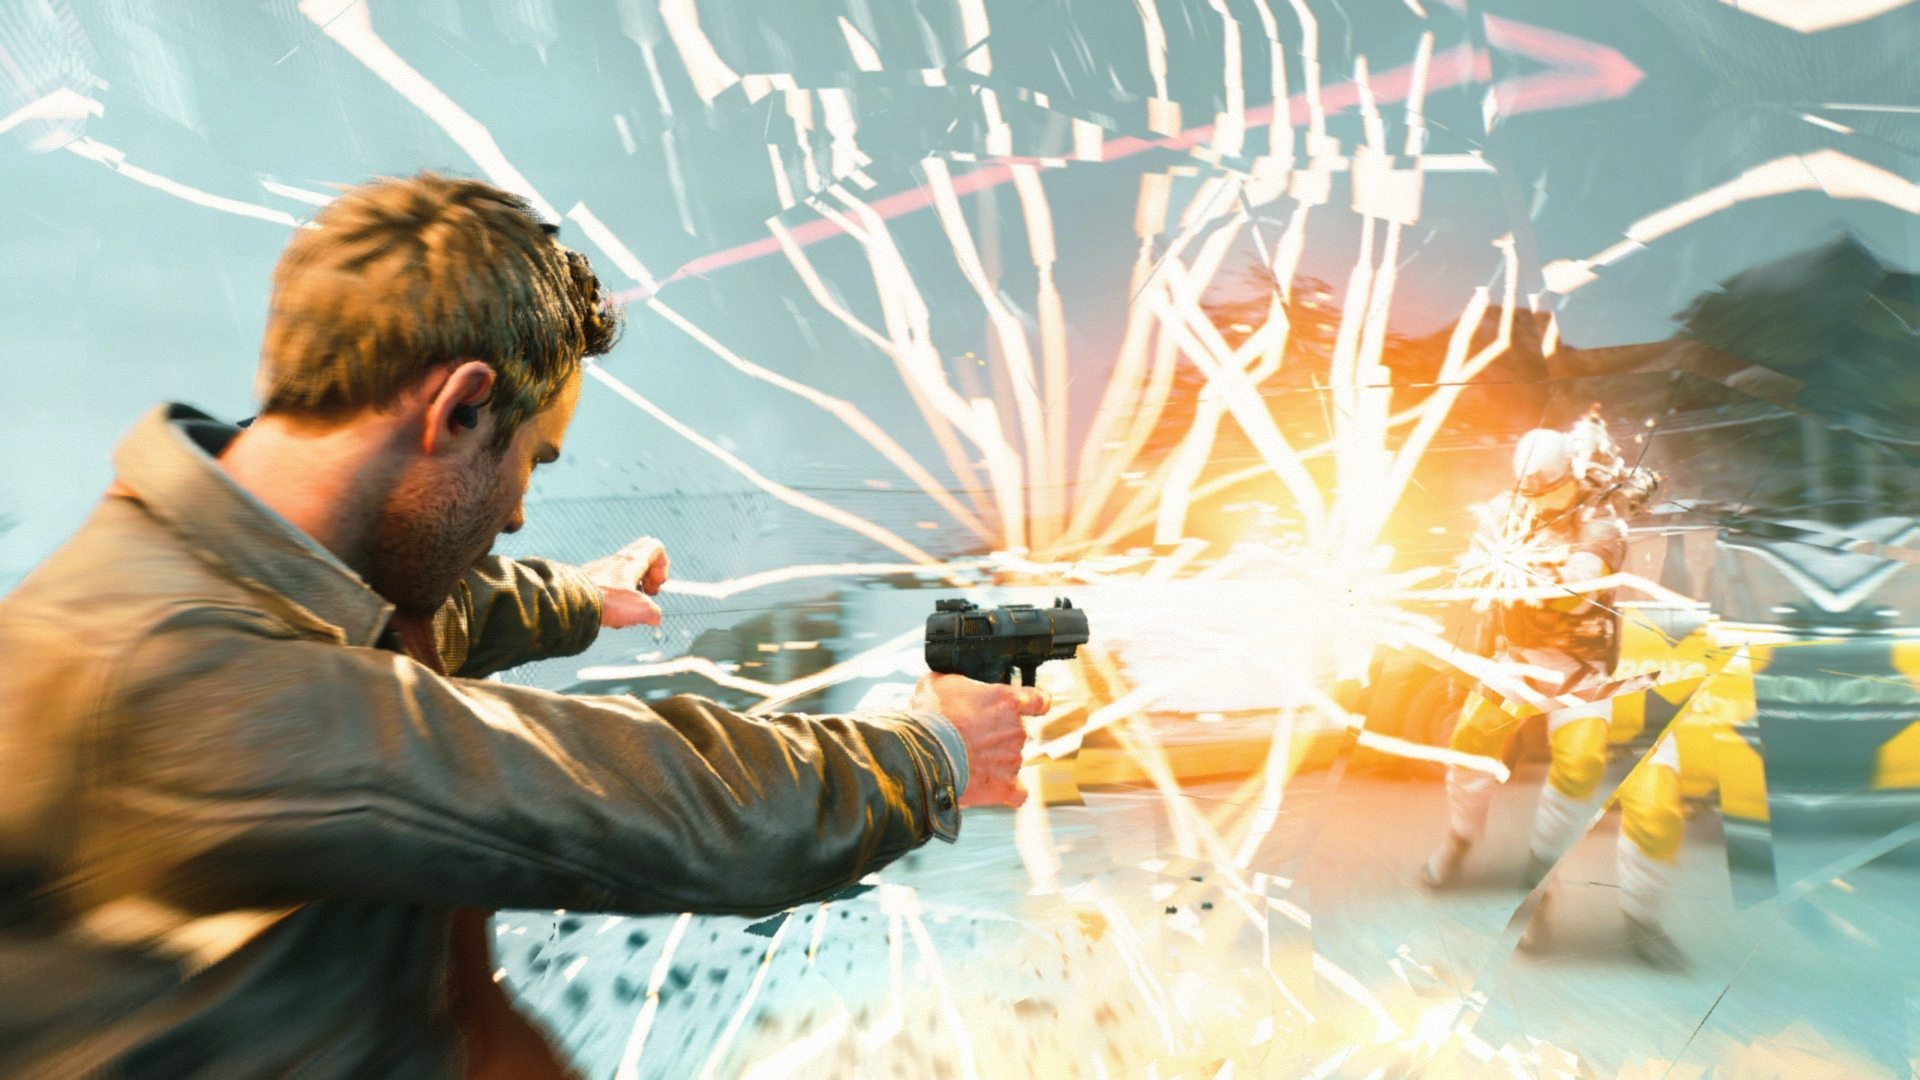 Quantum Break action